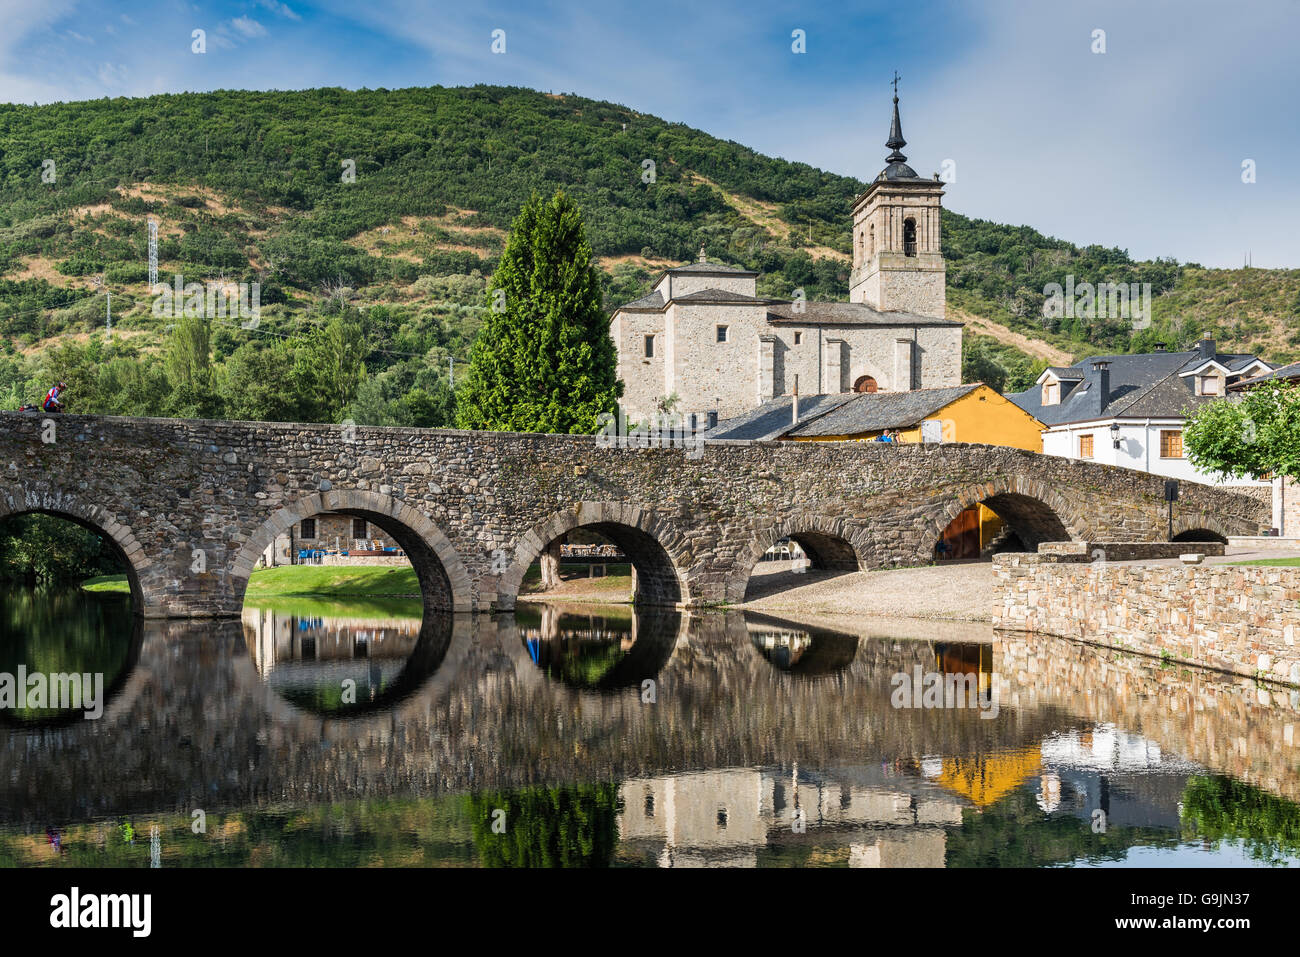 Bridge over the Meruelo river, created in times of the Ancient Rome. - Stock Image